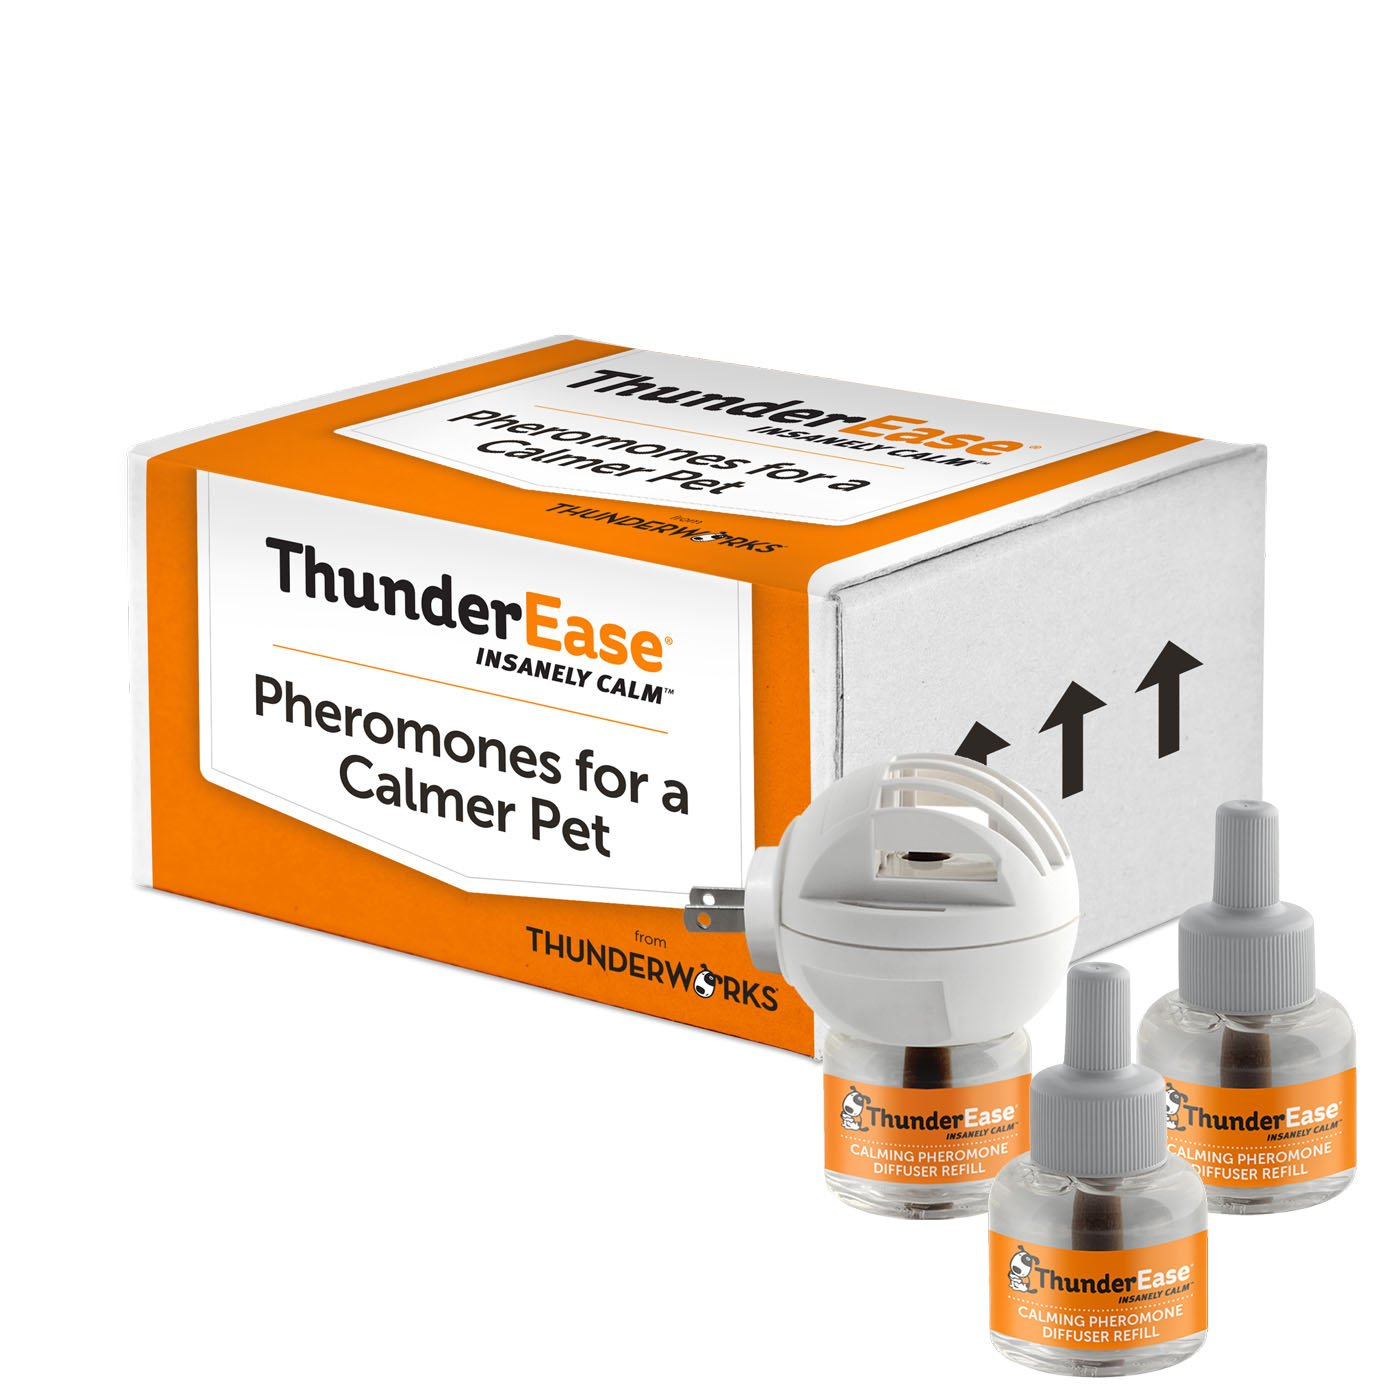 ThunderEase Dog Calming Pheromone Diffuser Kit - Relieve Separation Anxiety, Stress Barking and Chewing, Fear of Fireworks and Thunderstorms (90 Day Supply)